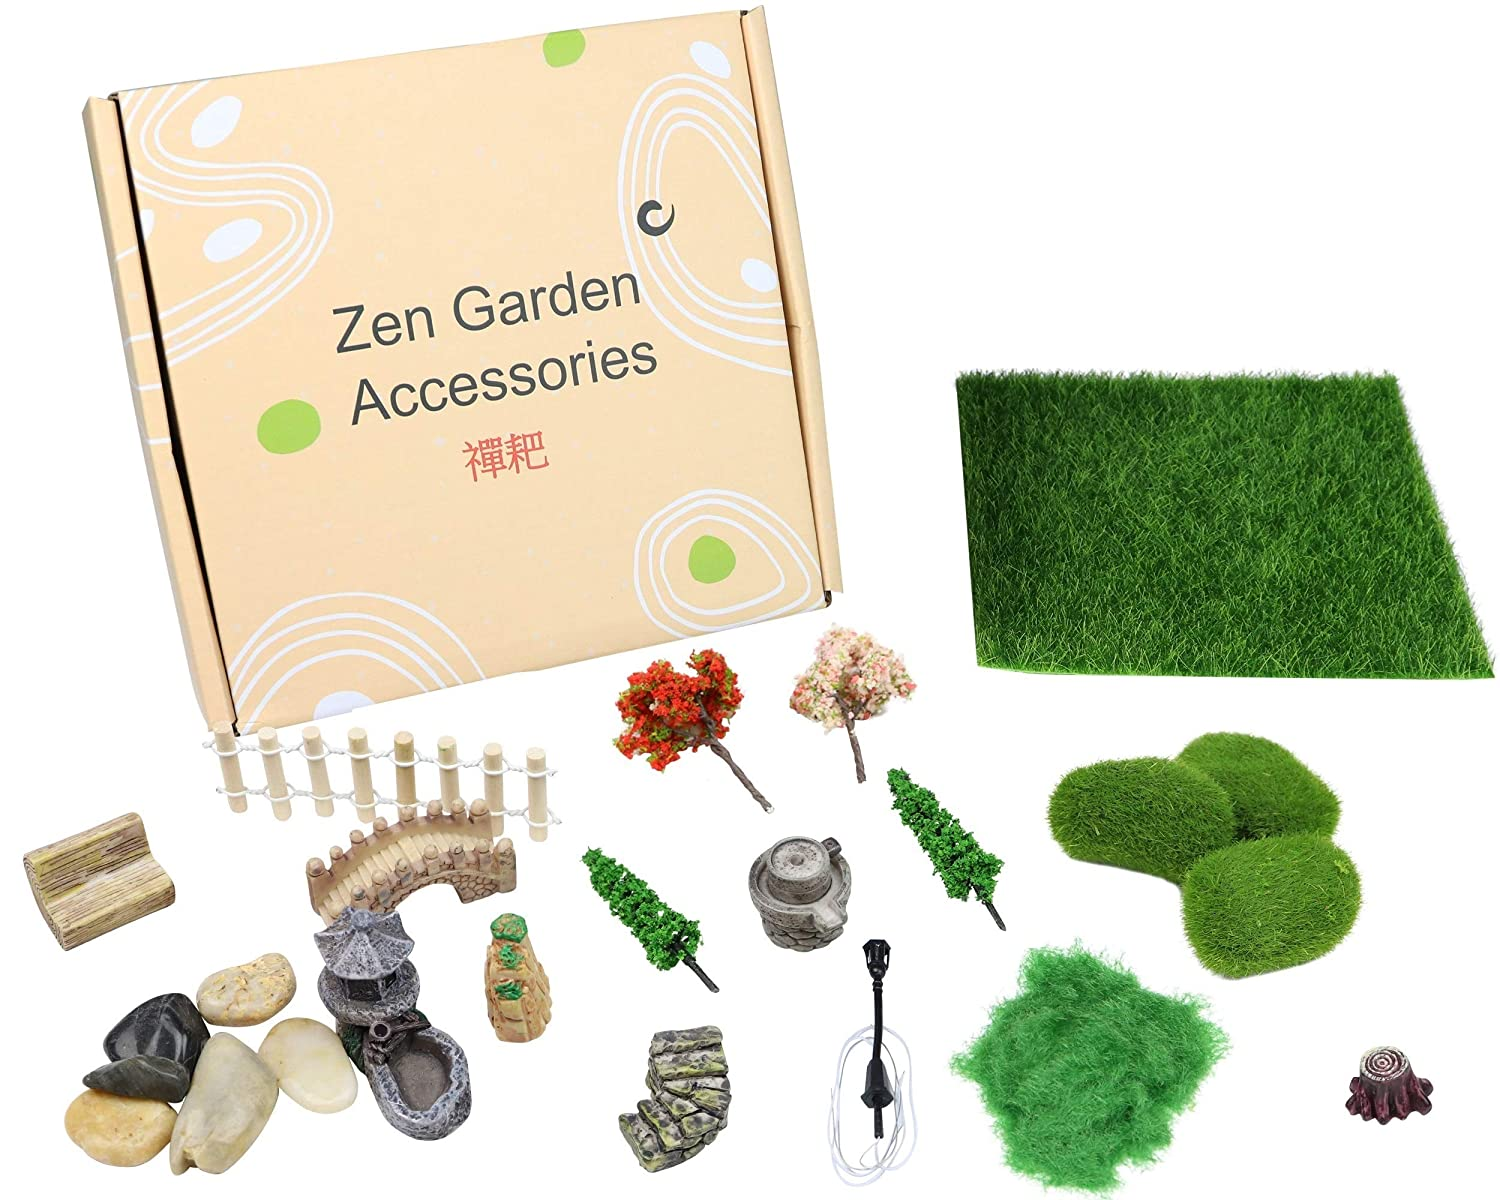 Zen Garden Accessories, Fairy Garden Miniatures, Sandbox Decorations, Zen Garden Miniatures, Zen Garden Ornaments, Fairy Garden Accessories, Fairy Garden Figurines